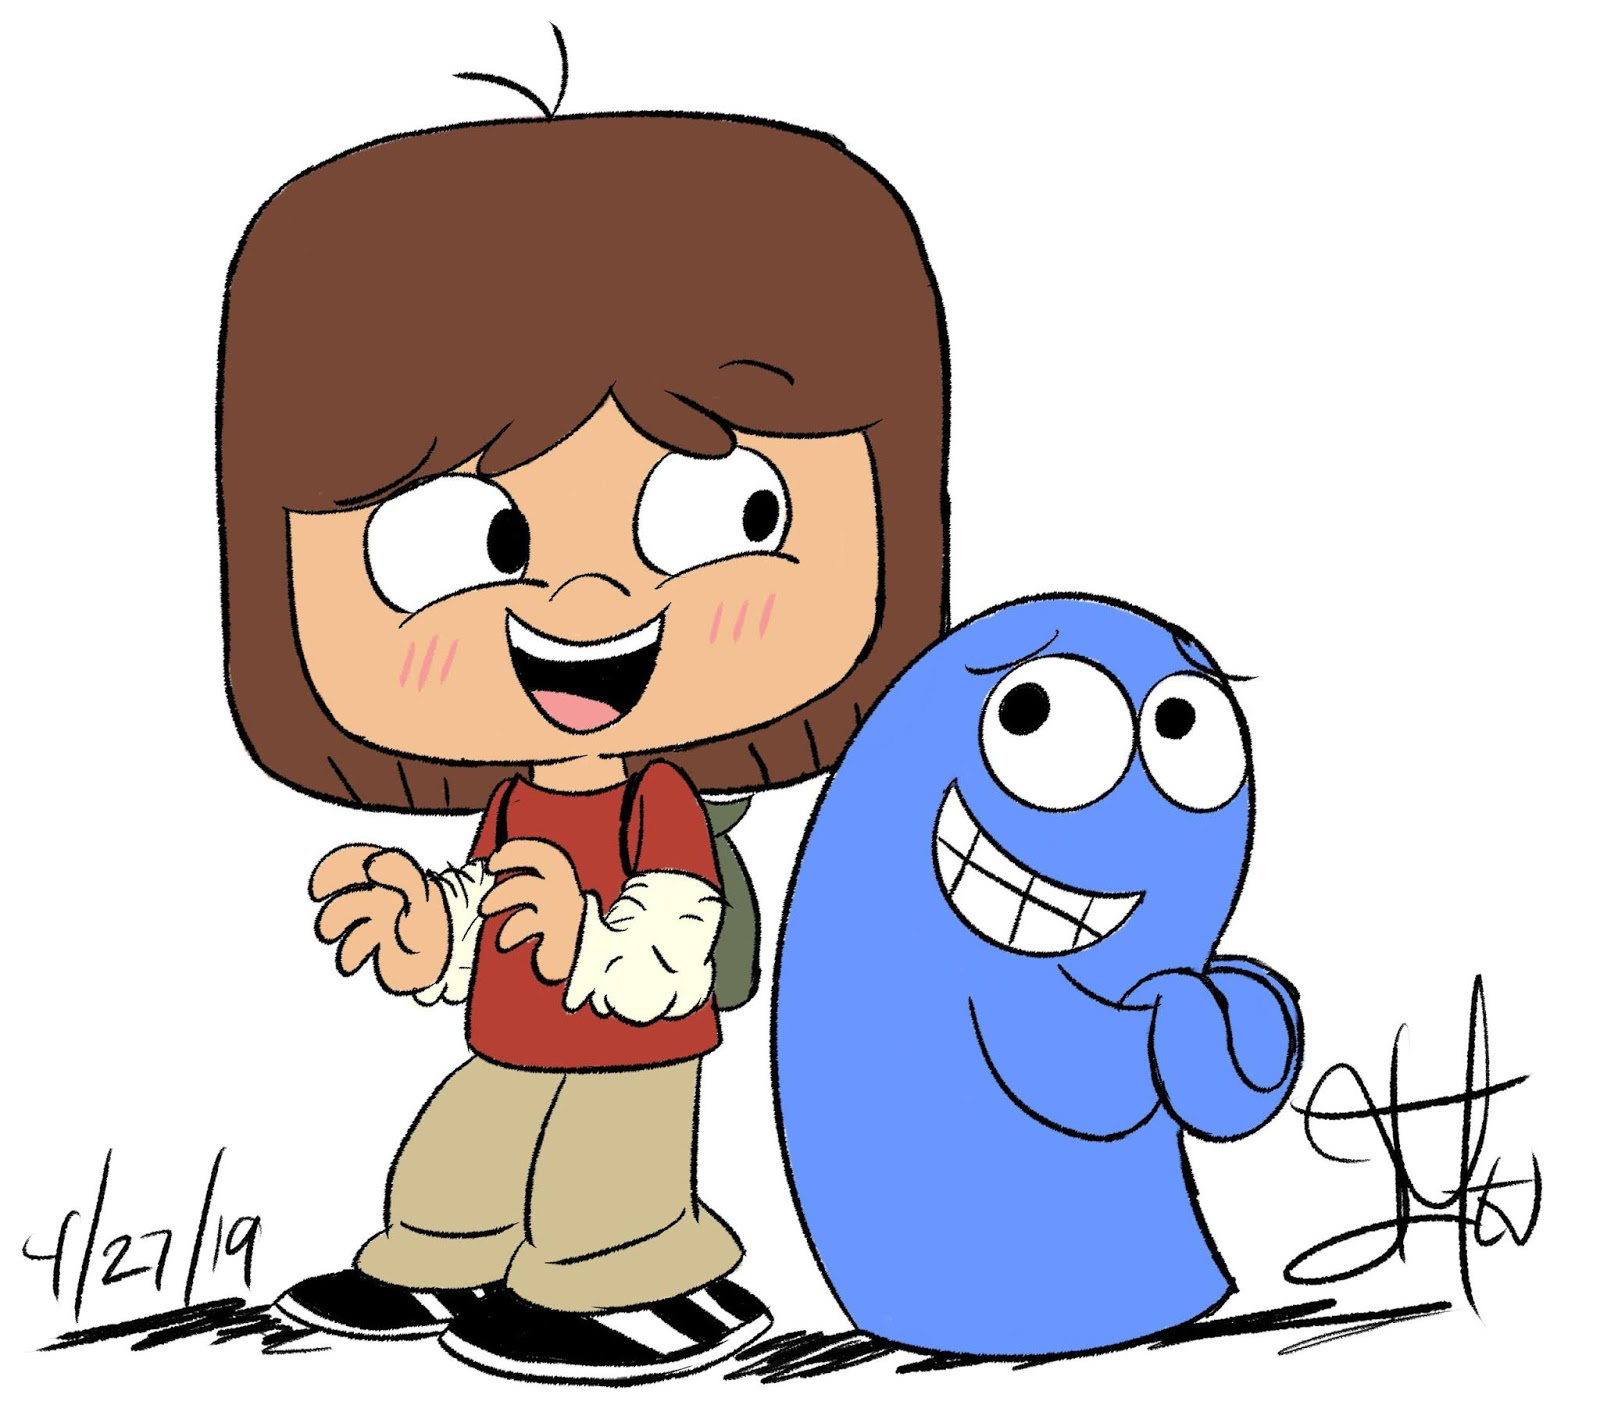 Fosters home for imaginary friends bloo me